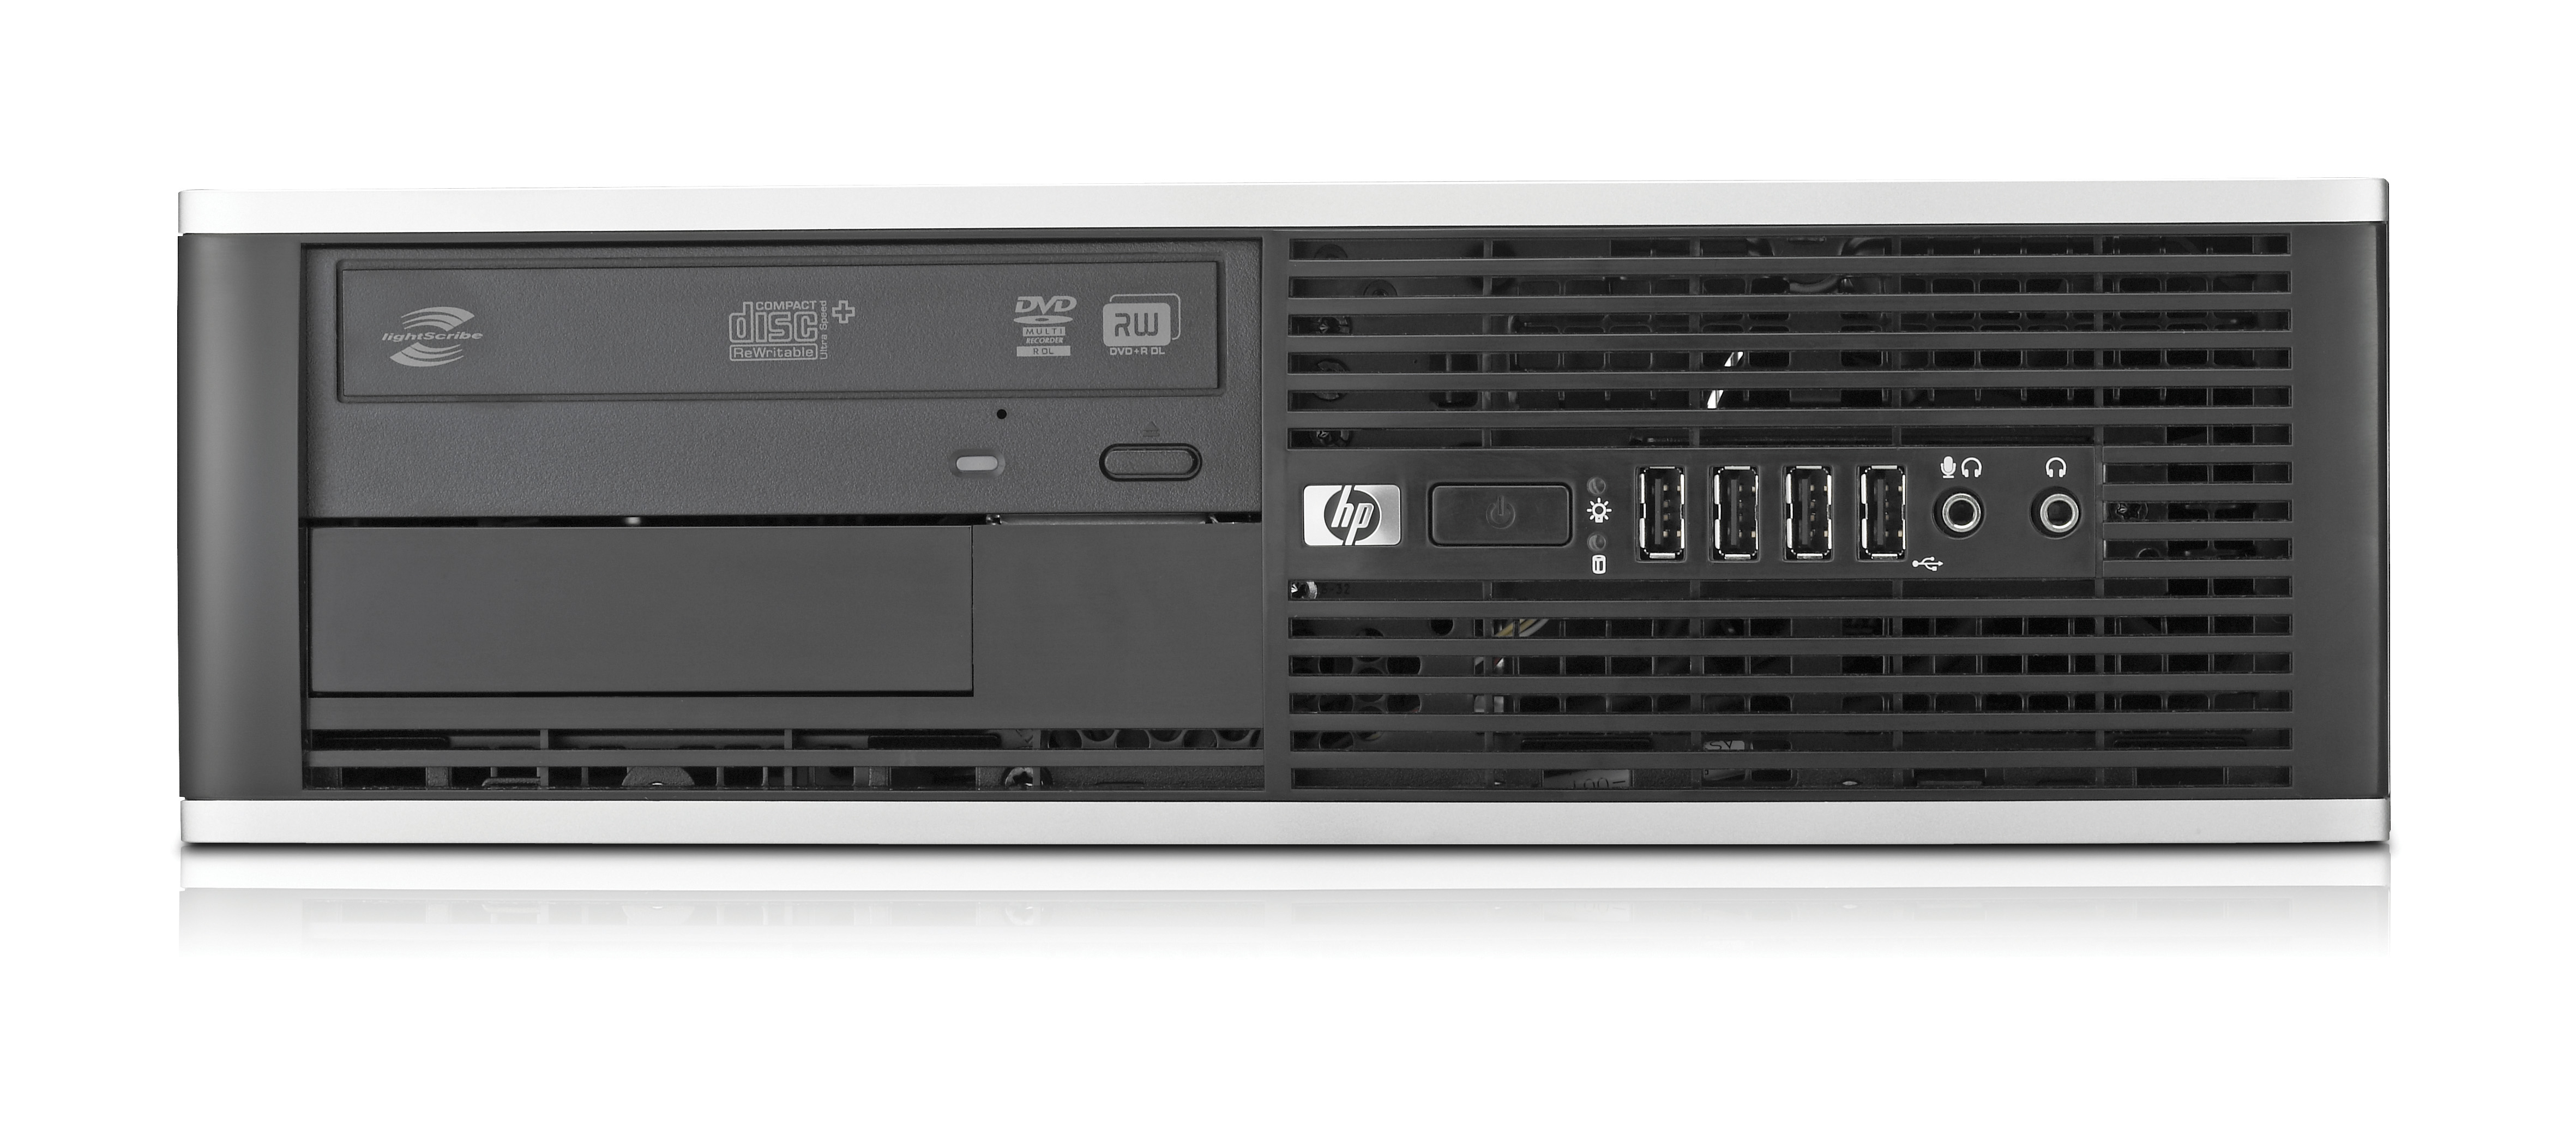 HP Compaq 6005 Small Form Factor